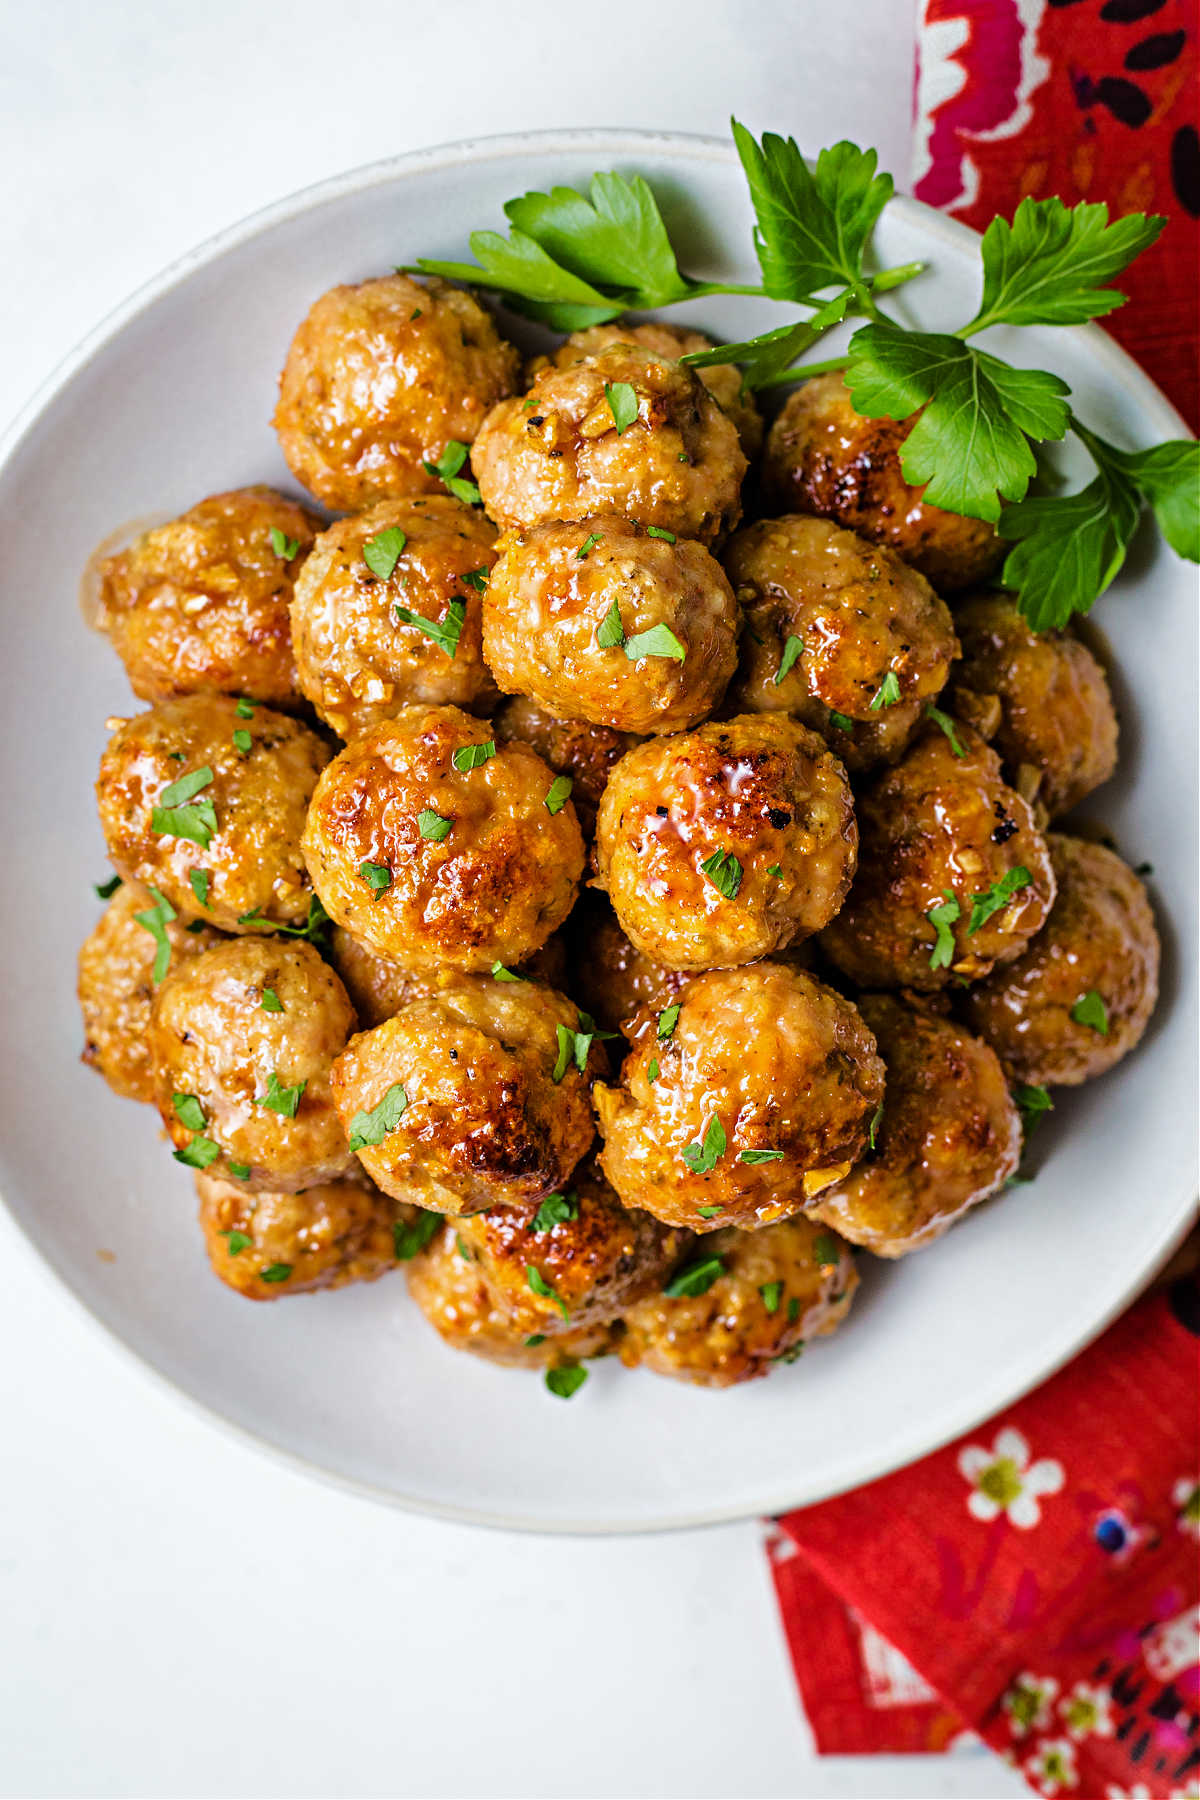 a plate of chicken meatballs garnished with parsley on top of a red napkin on a table.